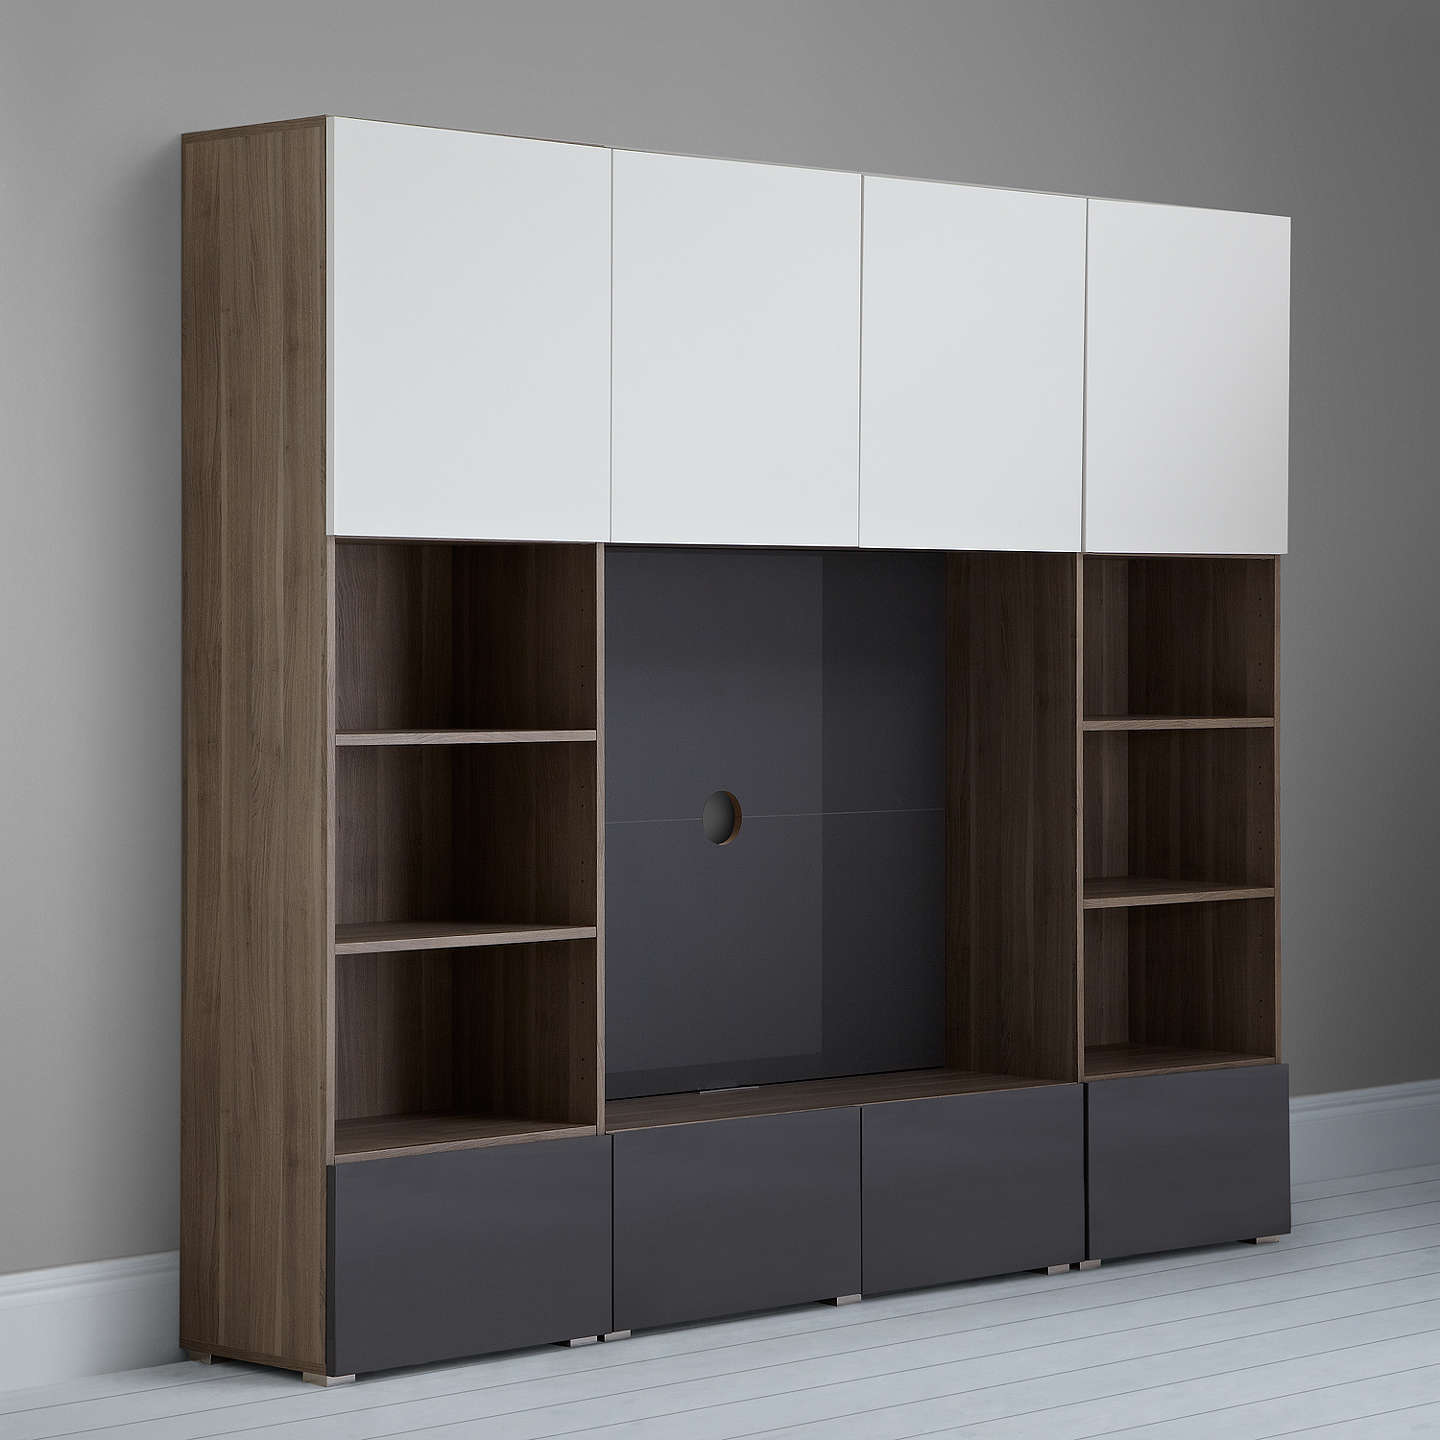 BuyHouse by John Lewis Mix it 240cm Media Unit with Steel Panel, Gloss Grey Online at johnlewis.com